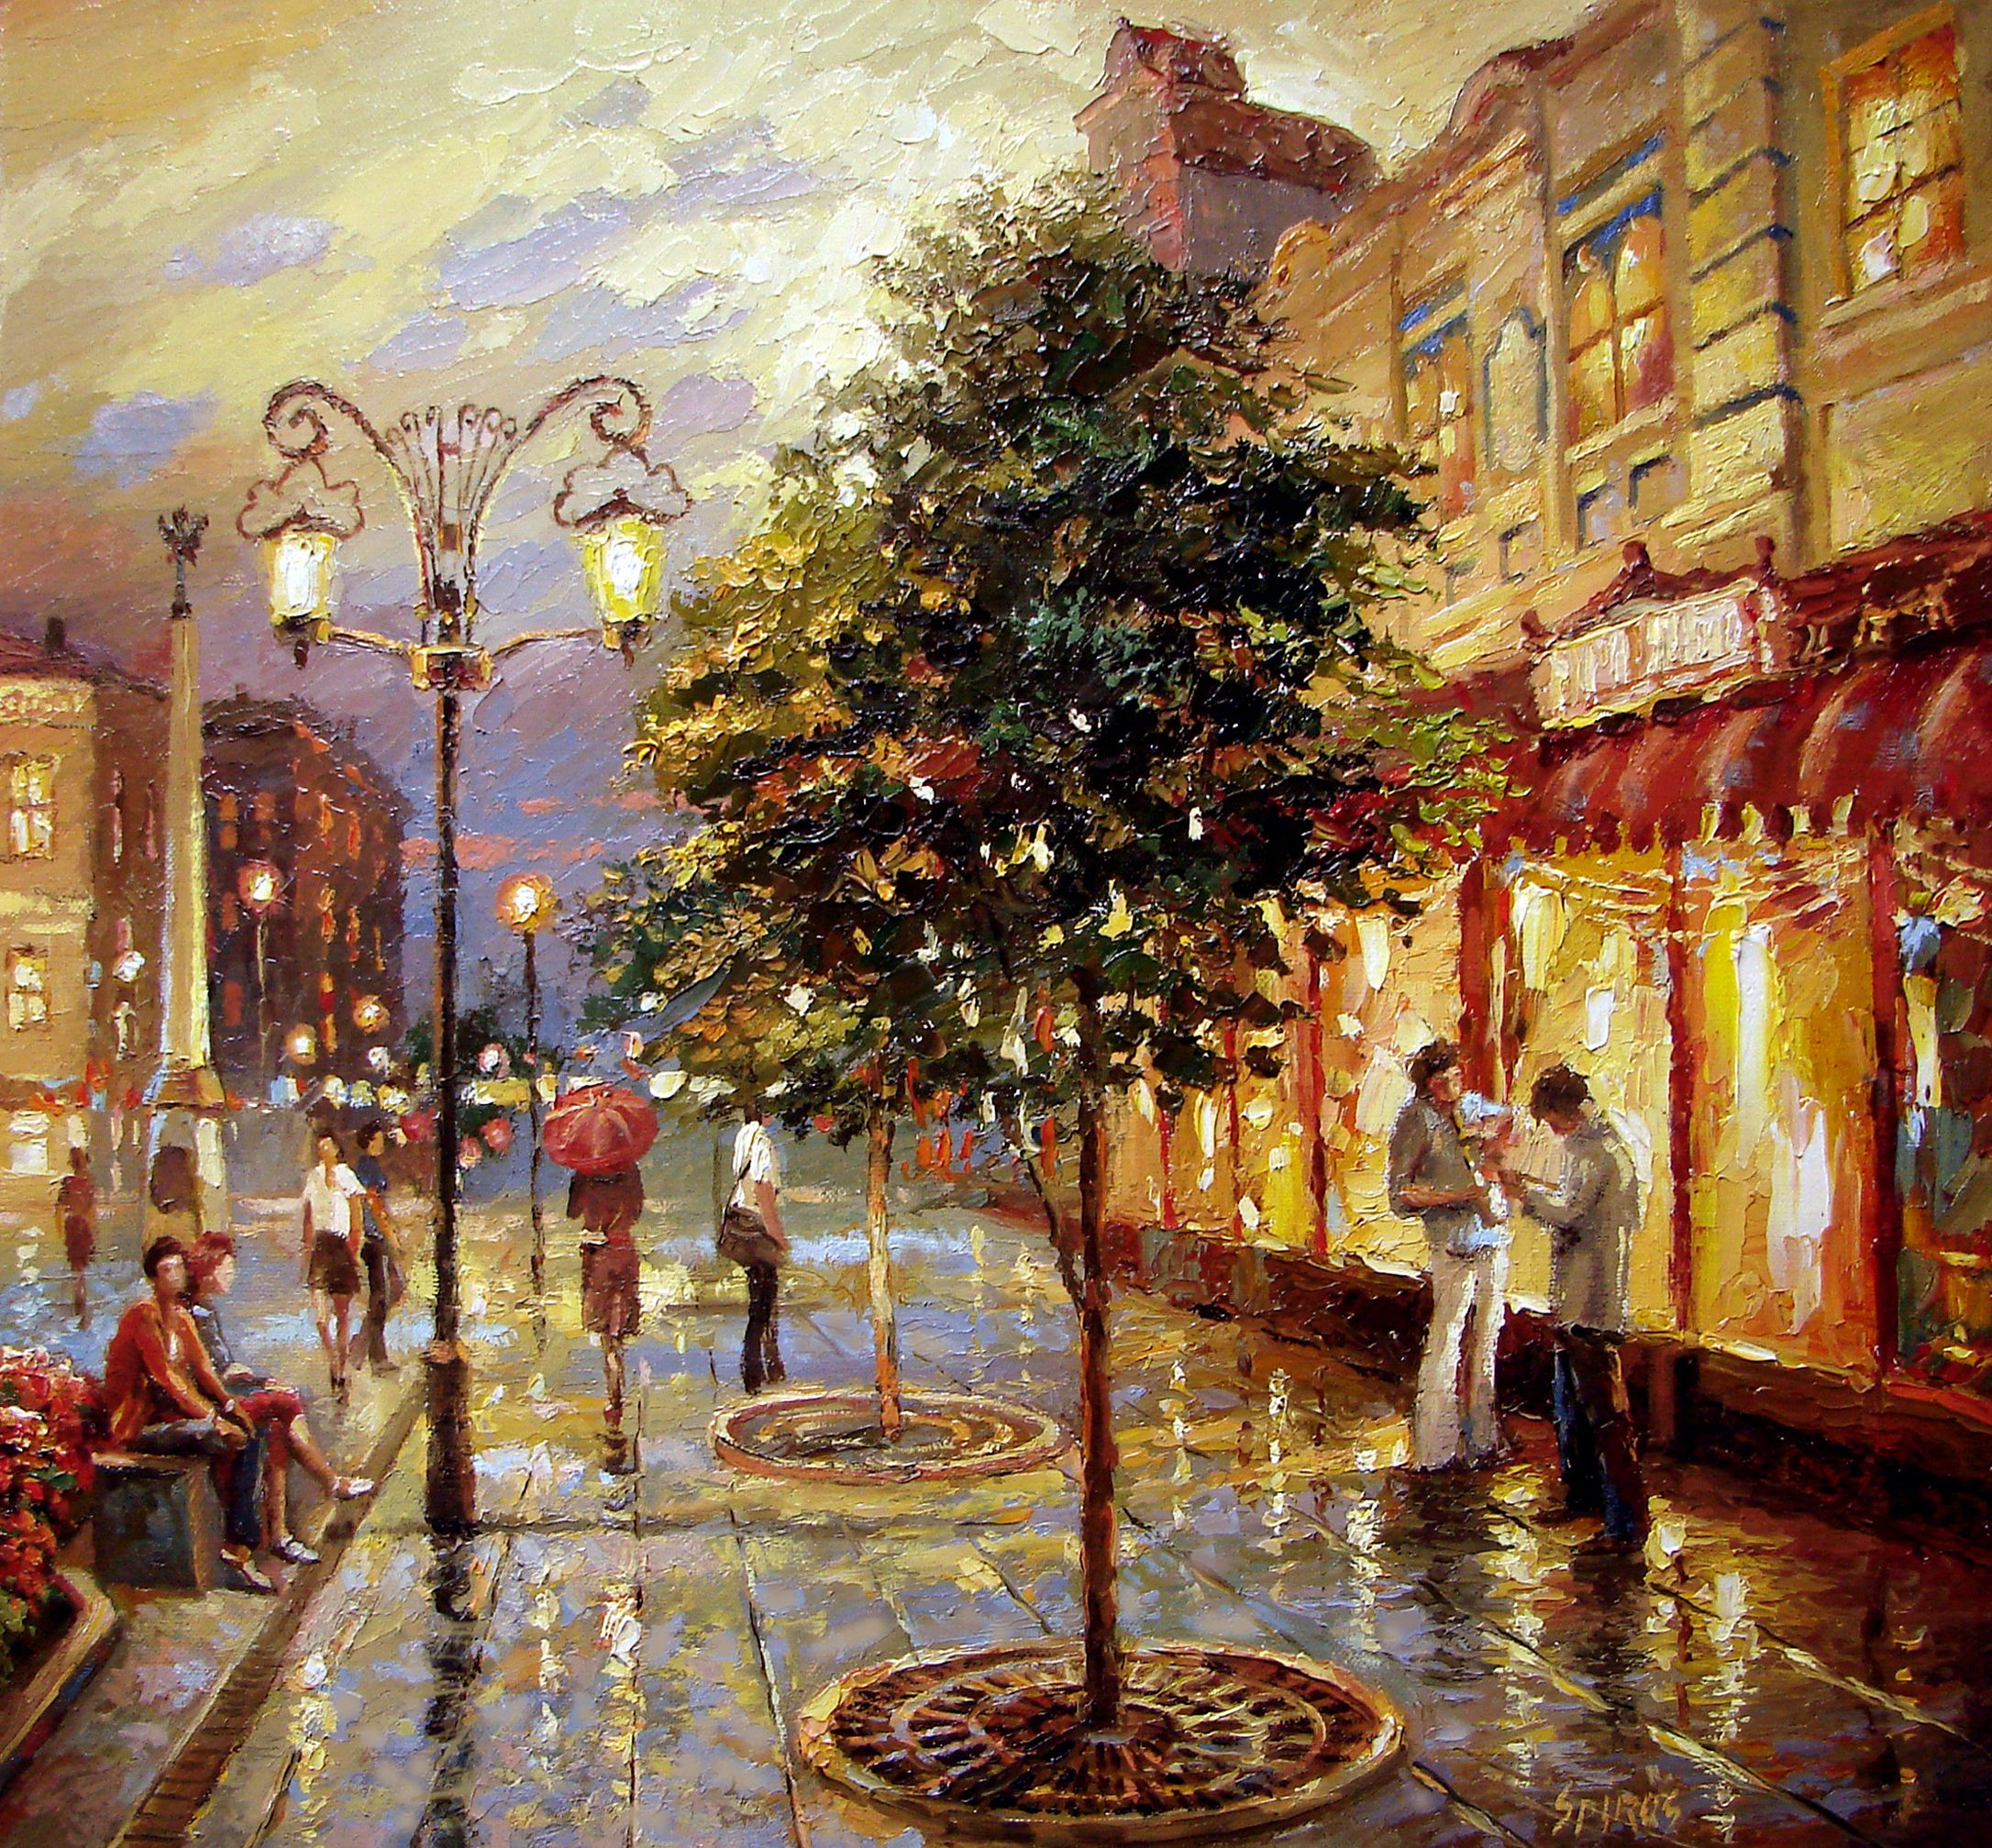 City Landscape Paintings By Dmitri Spiros Cuded Landscape Paintings City Landscape Cityscape Painting